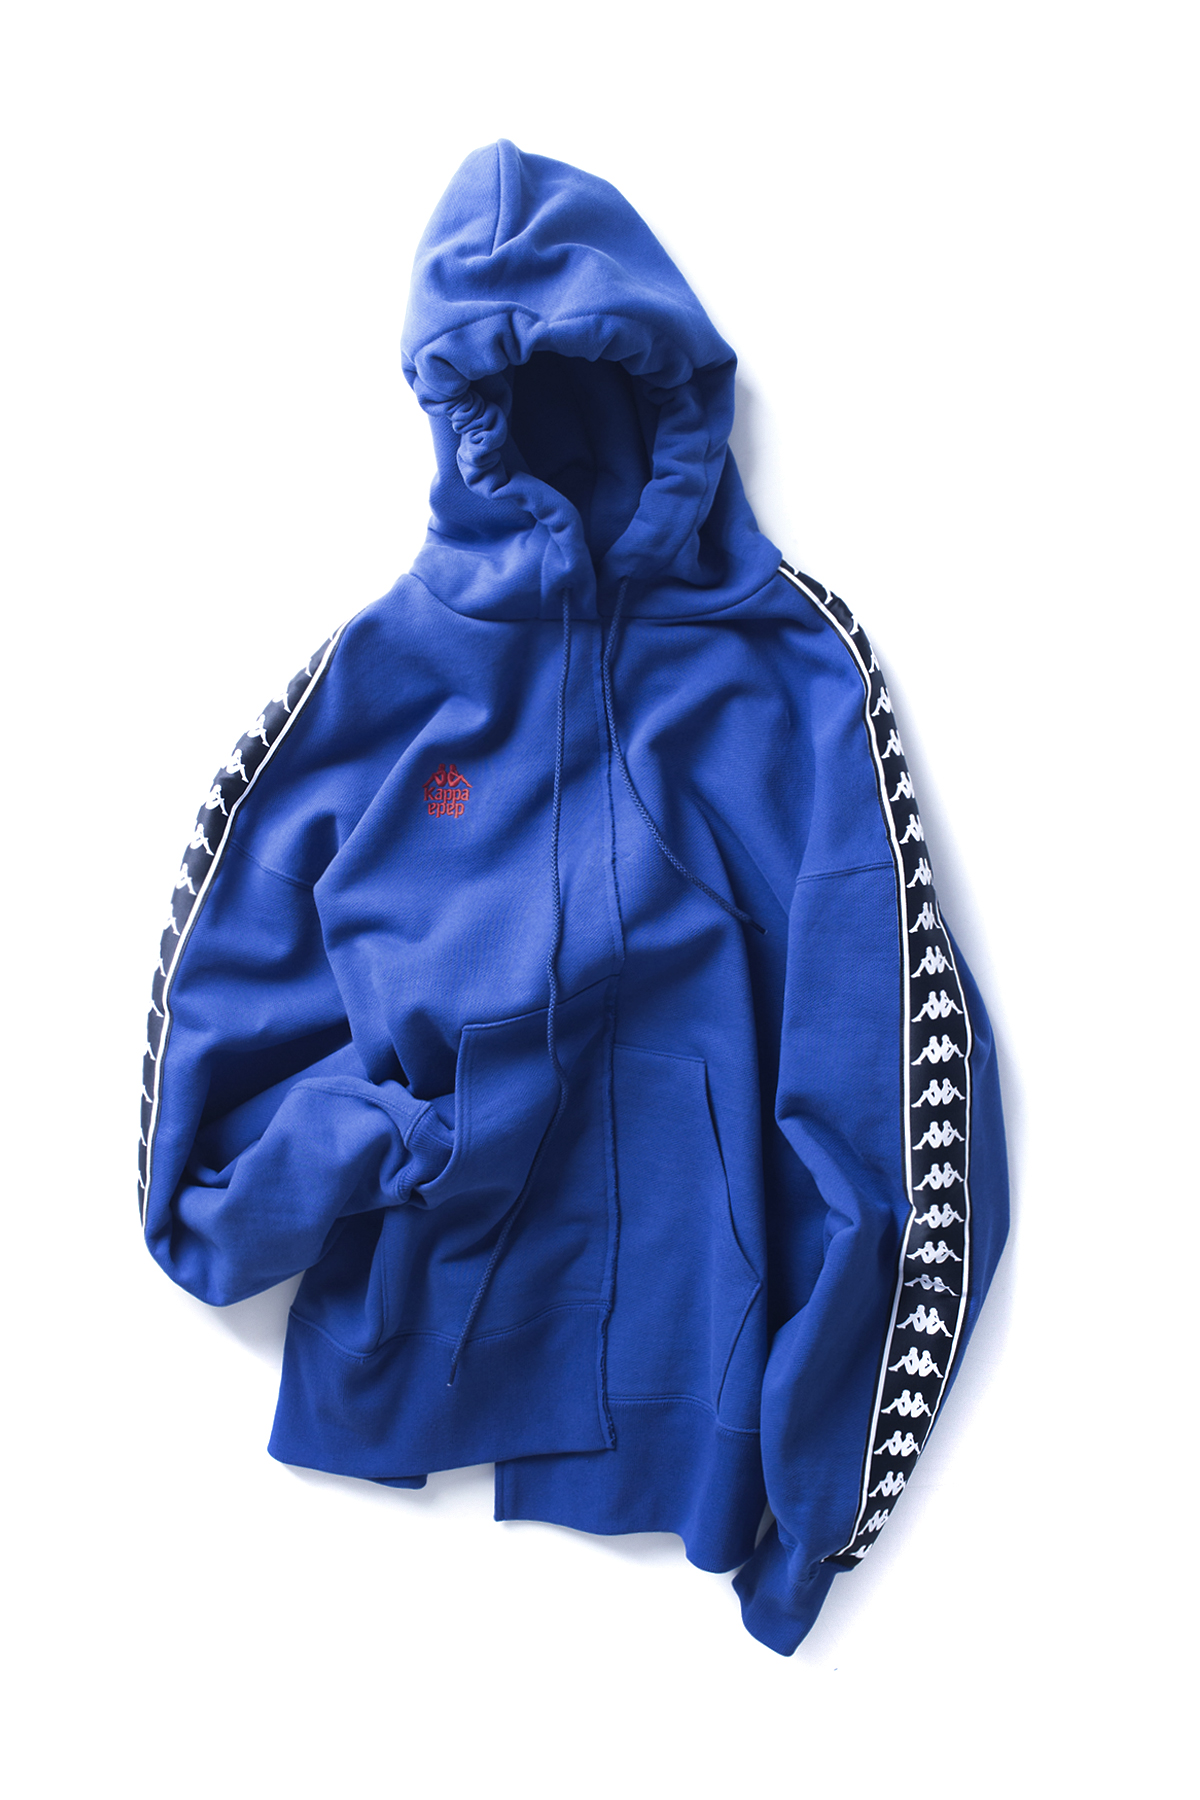 Christian Dada : KAPPA x Dada Sweat Shirt (Blue)